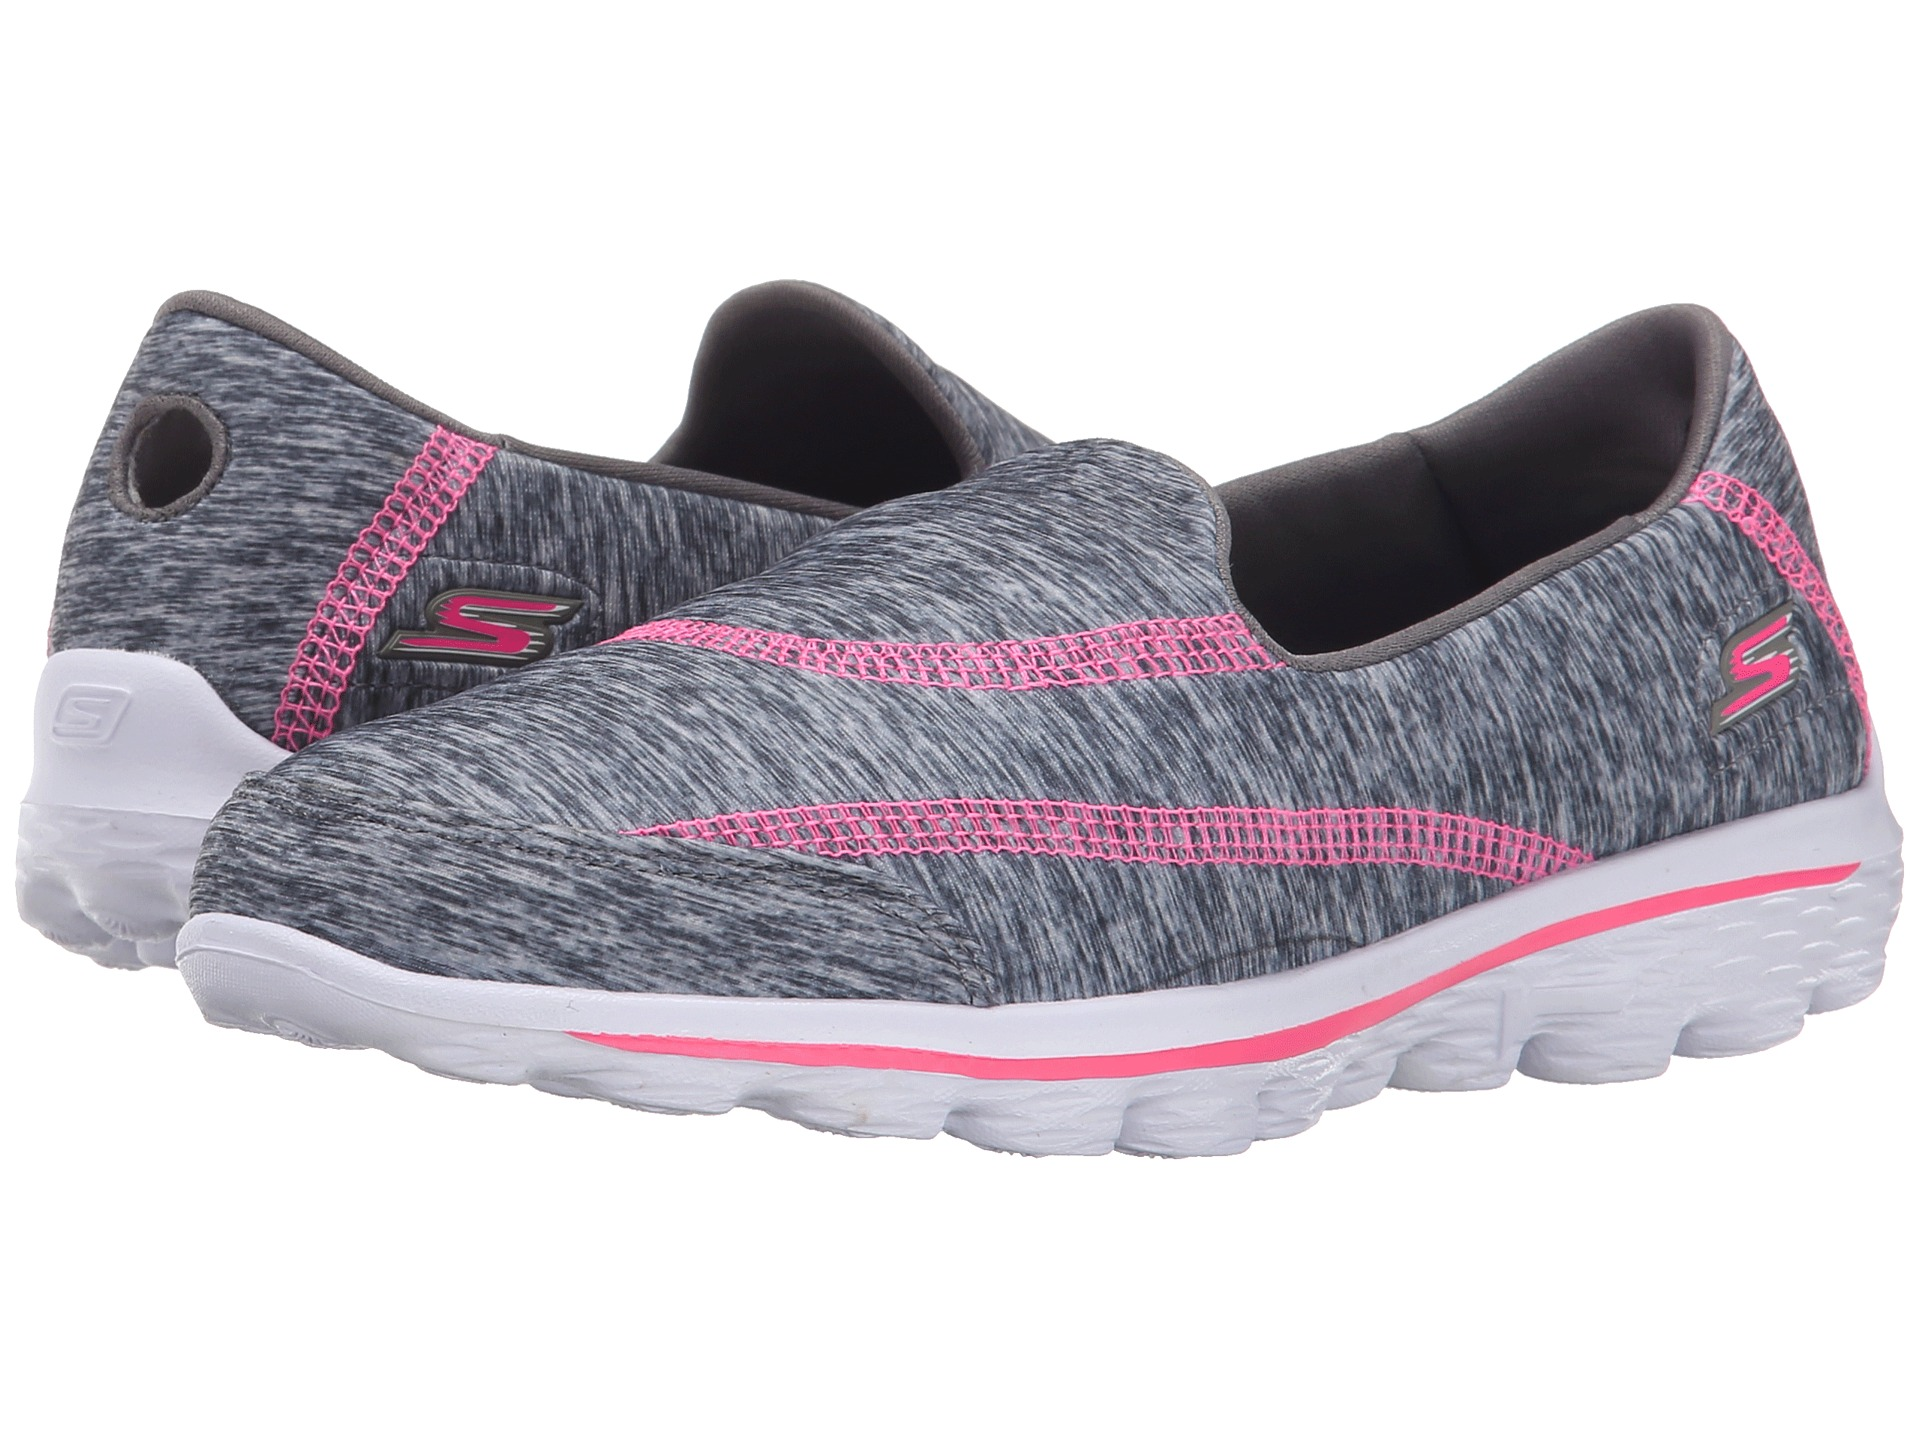 Skechers Thermoflux - Boys Kids Sale. Quantity Add to Cart. GET 10% OFF YOUR ORDER!* Size Chart; Reviews; Give him instant sporty cool style and lots of comfort with the SKECHERS Thermoflux shoe. Athletic layered mesh fabric and synthetic upper in a zigzag strap front athletic sporty training sneaker with stitching and overlay accents.